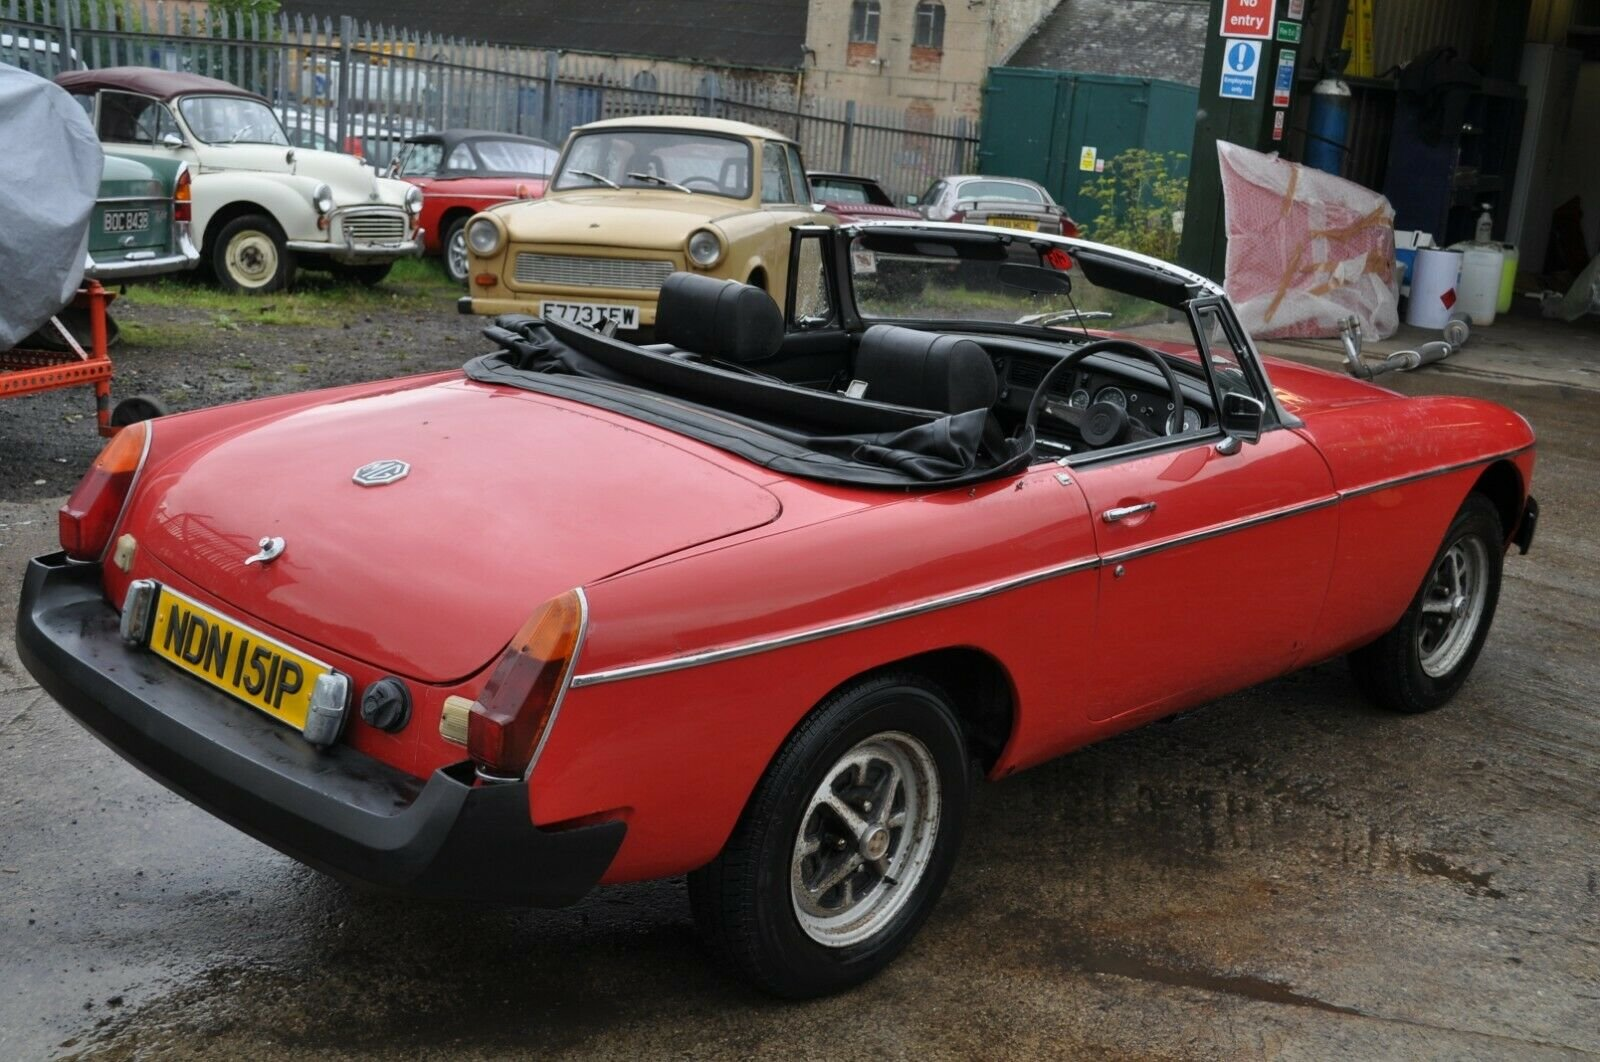 1975 MG MGB ROADSTER IN RED TAX EXEMPT GOOD SOLID CLASSIC CA For Sale (picture 3 of 6)